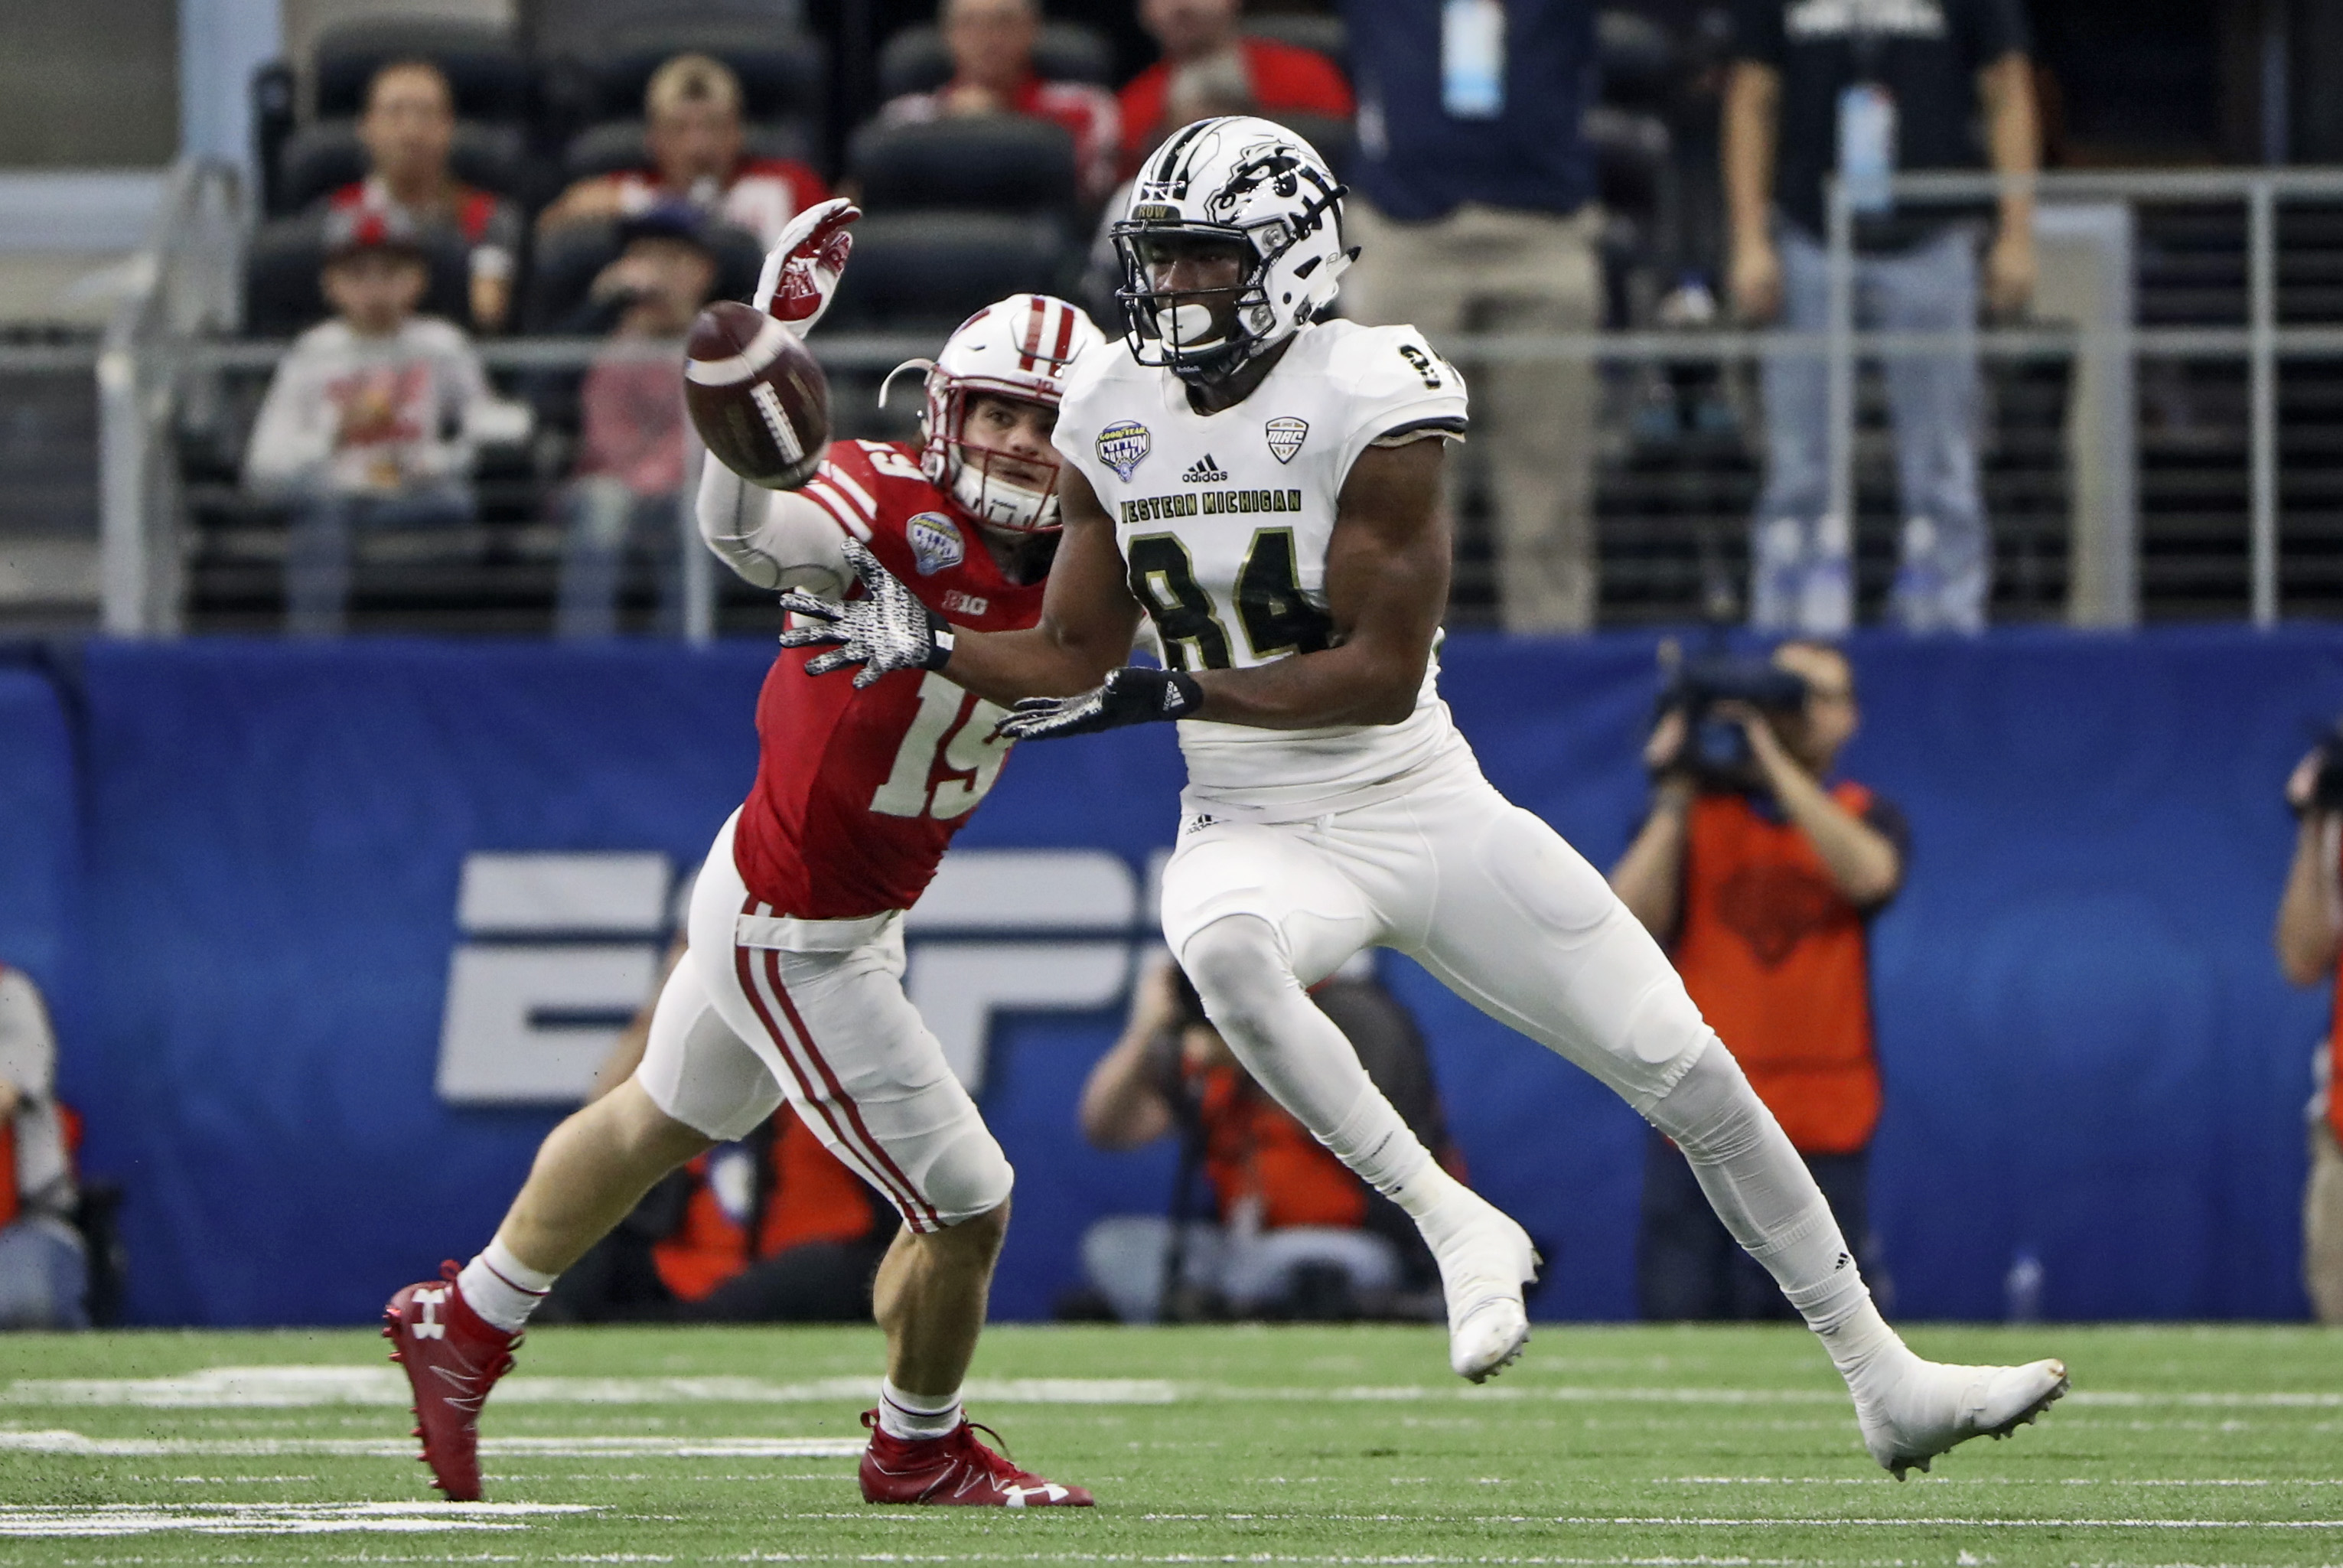 NFL Combine 2017: Wide Receivers to Watch in Indianapolis